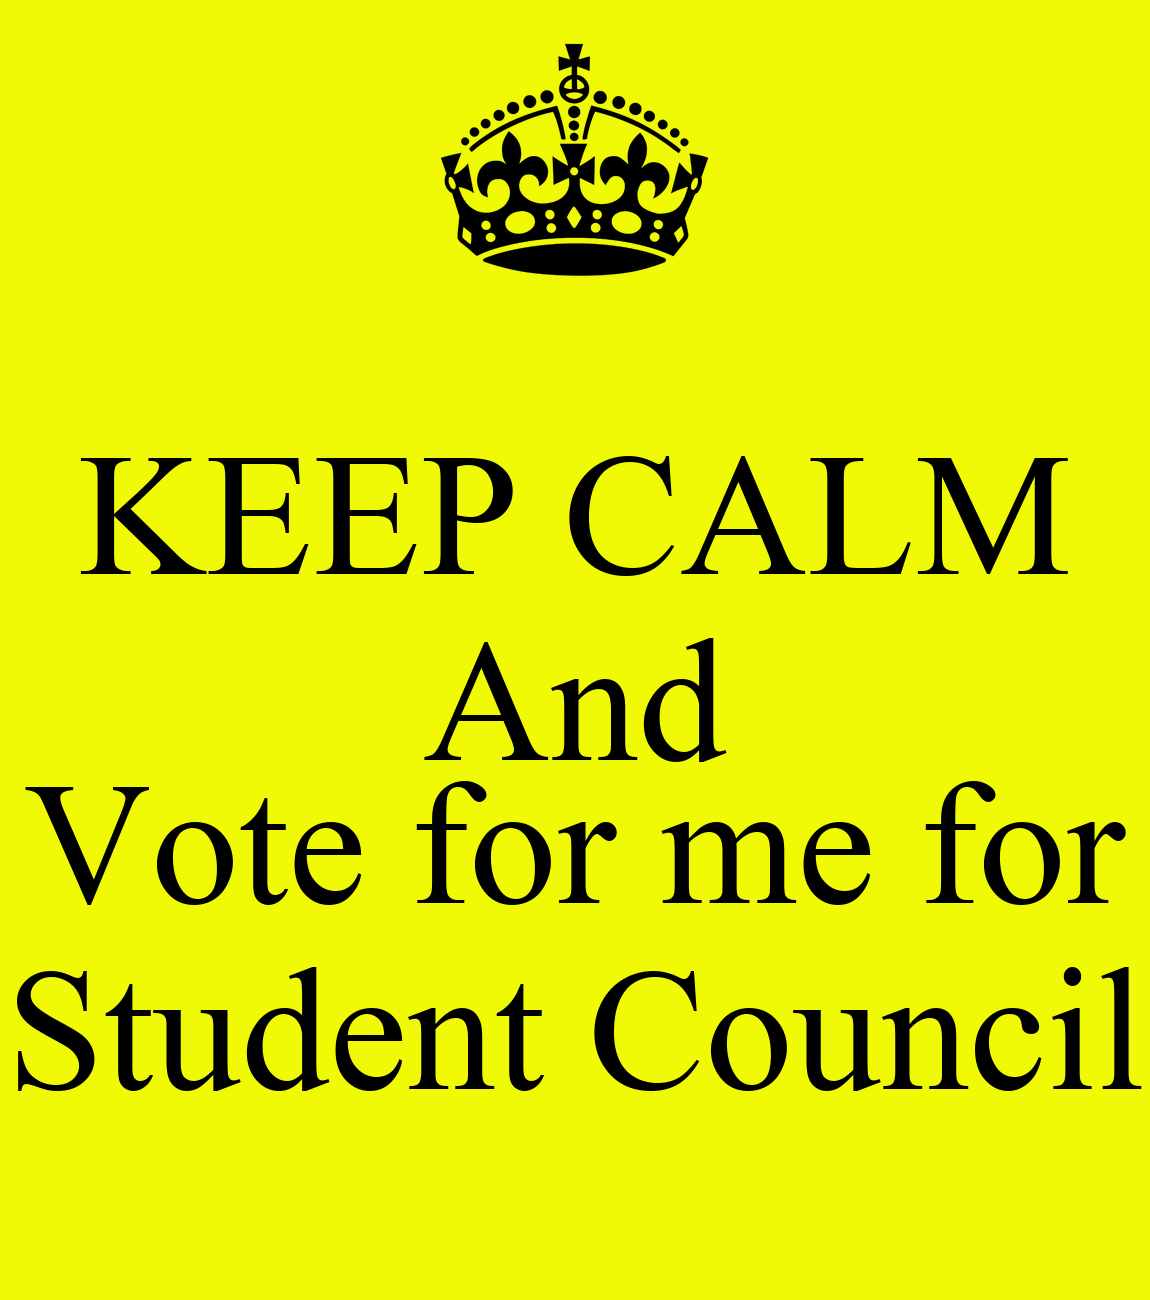 KEEP CALM And Vote for me for Student Council Poster ...